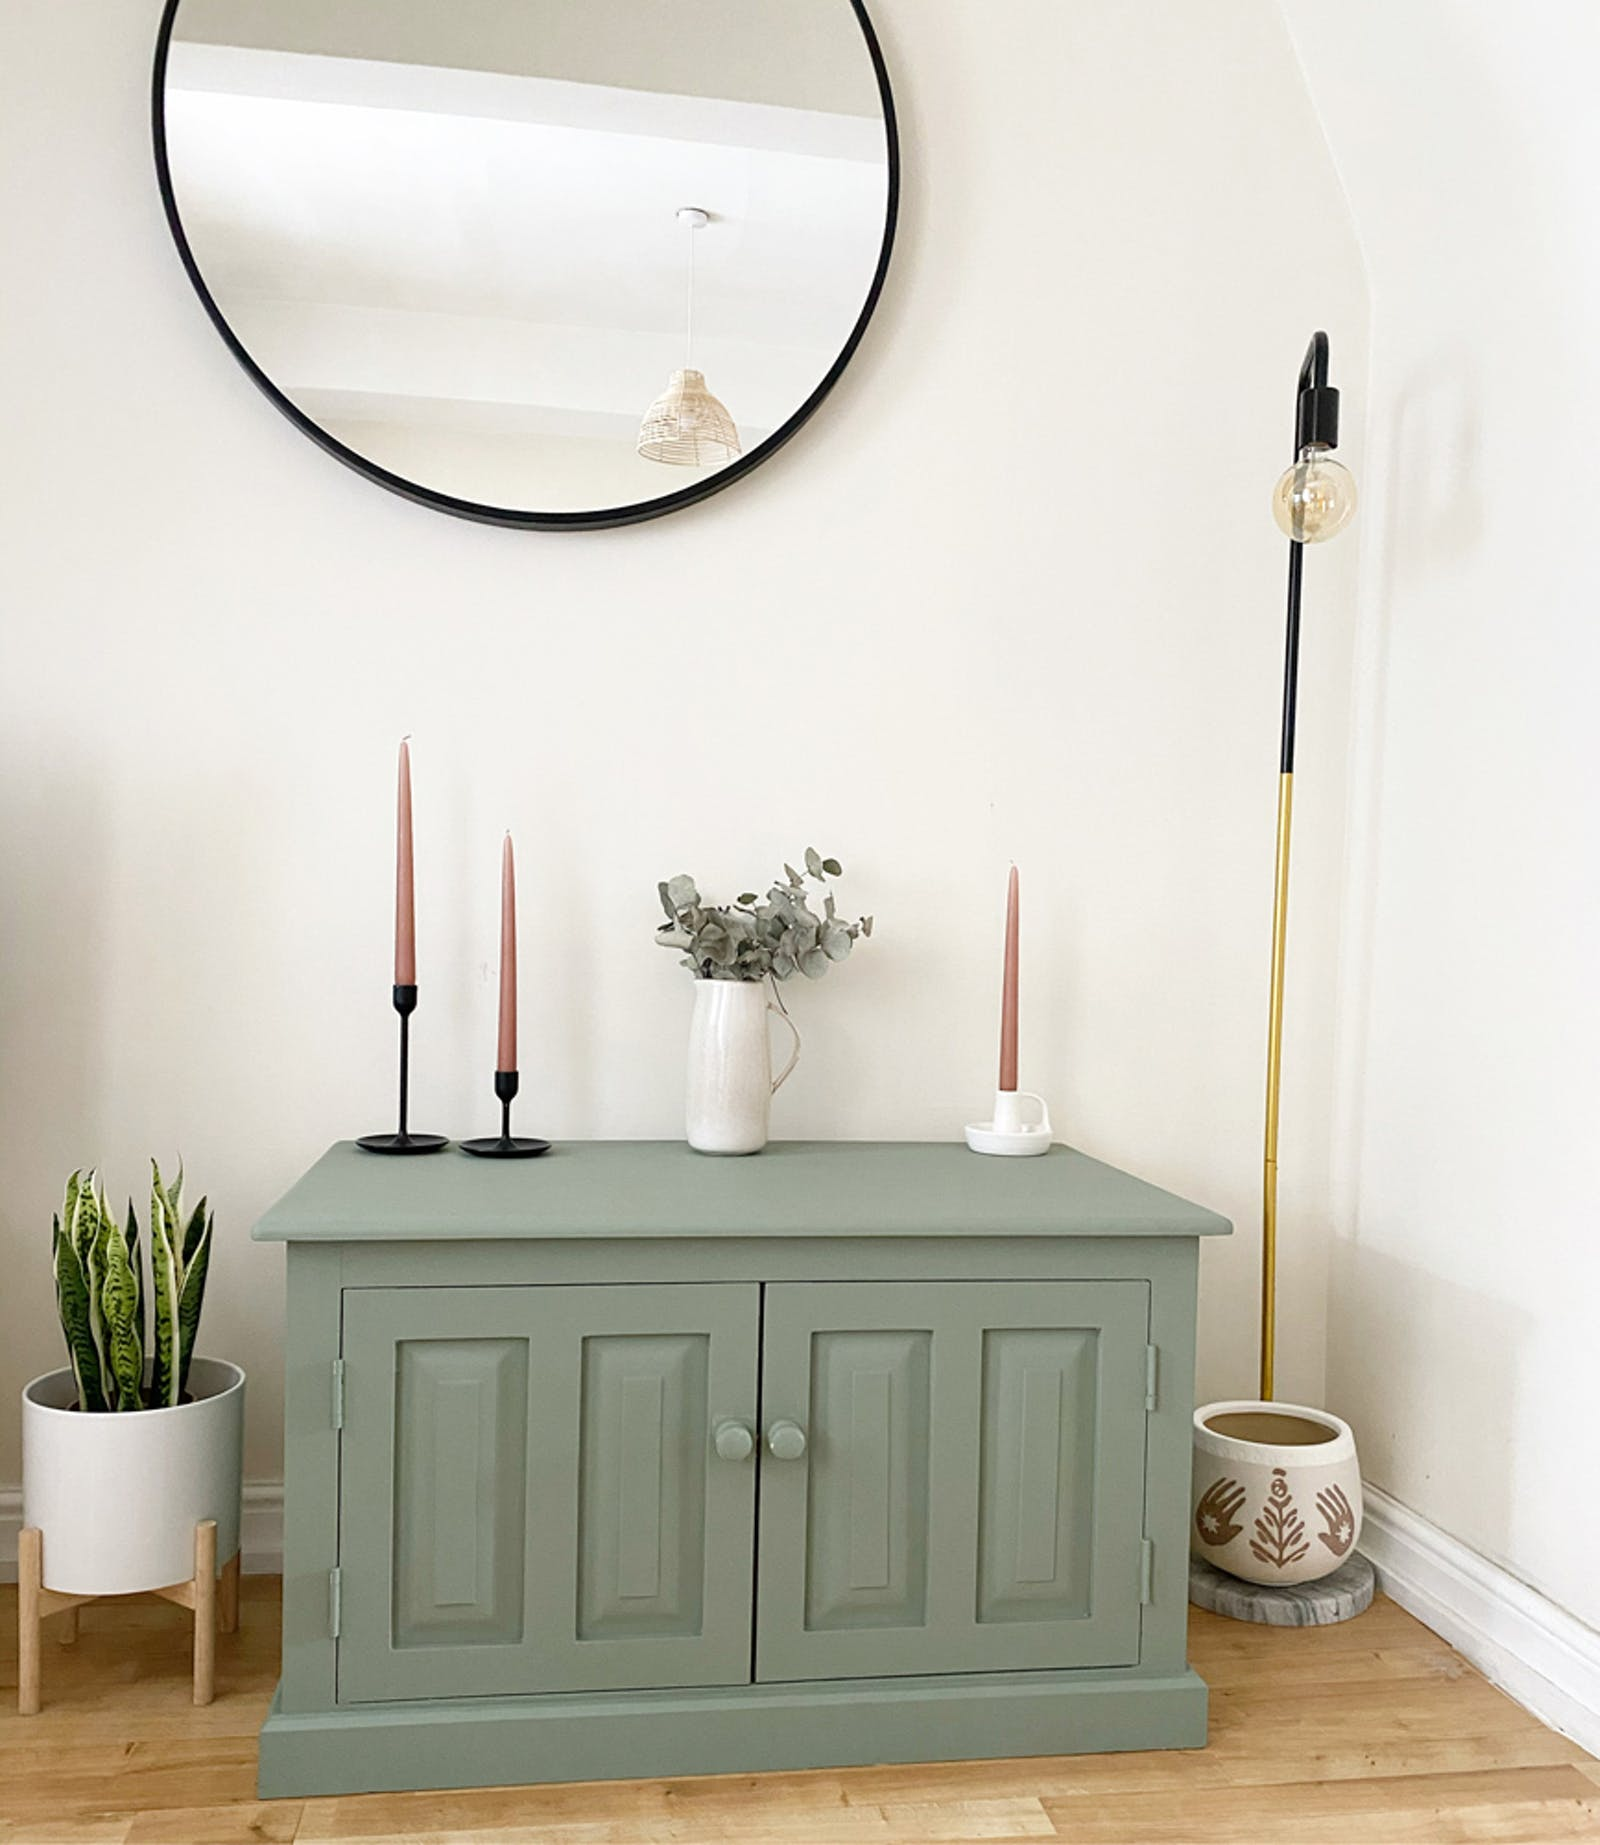 Console painted in Lick Green 02